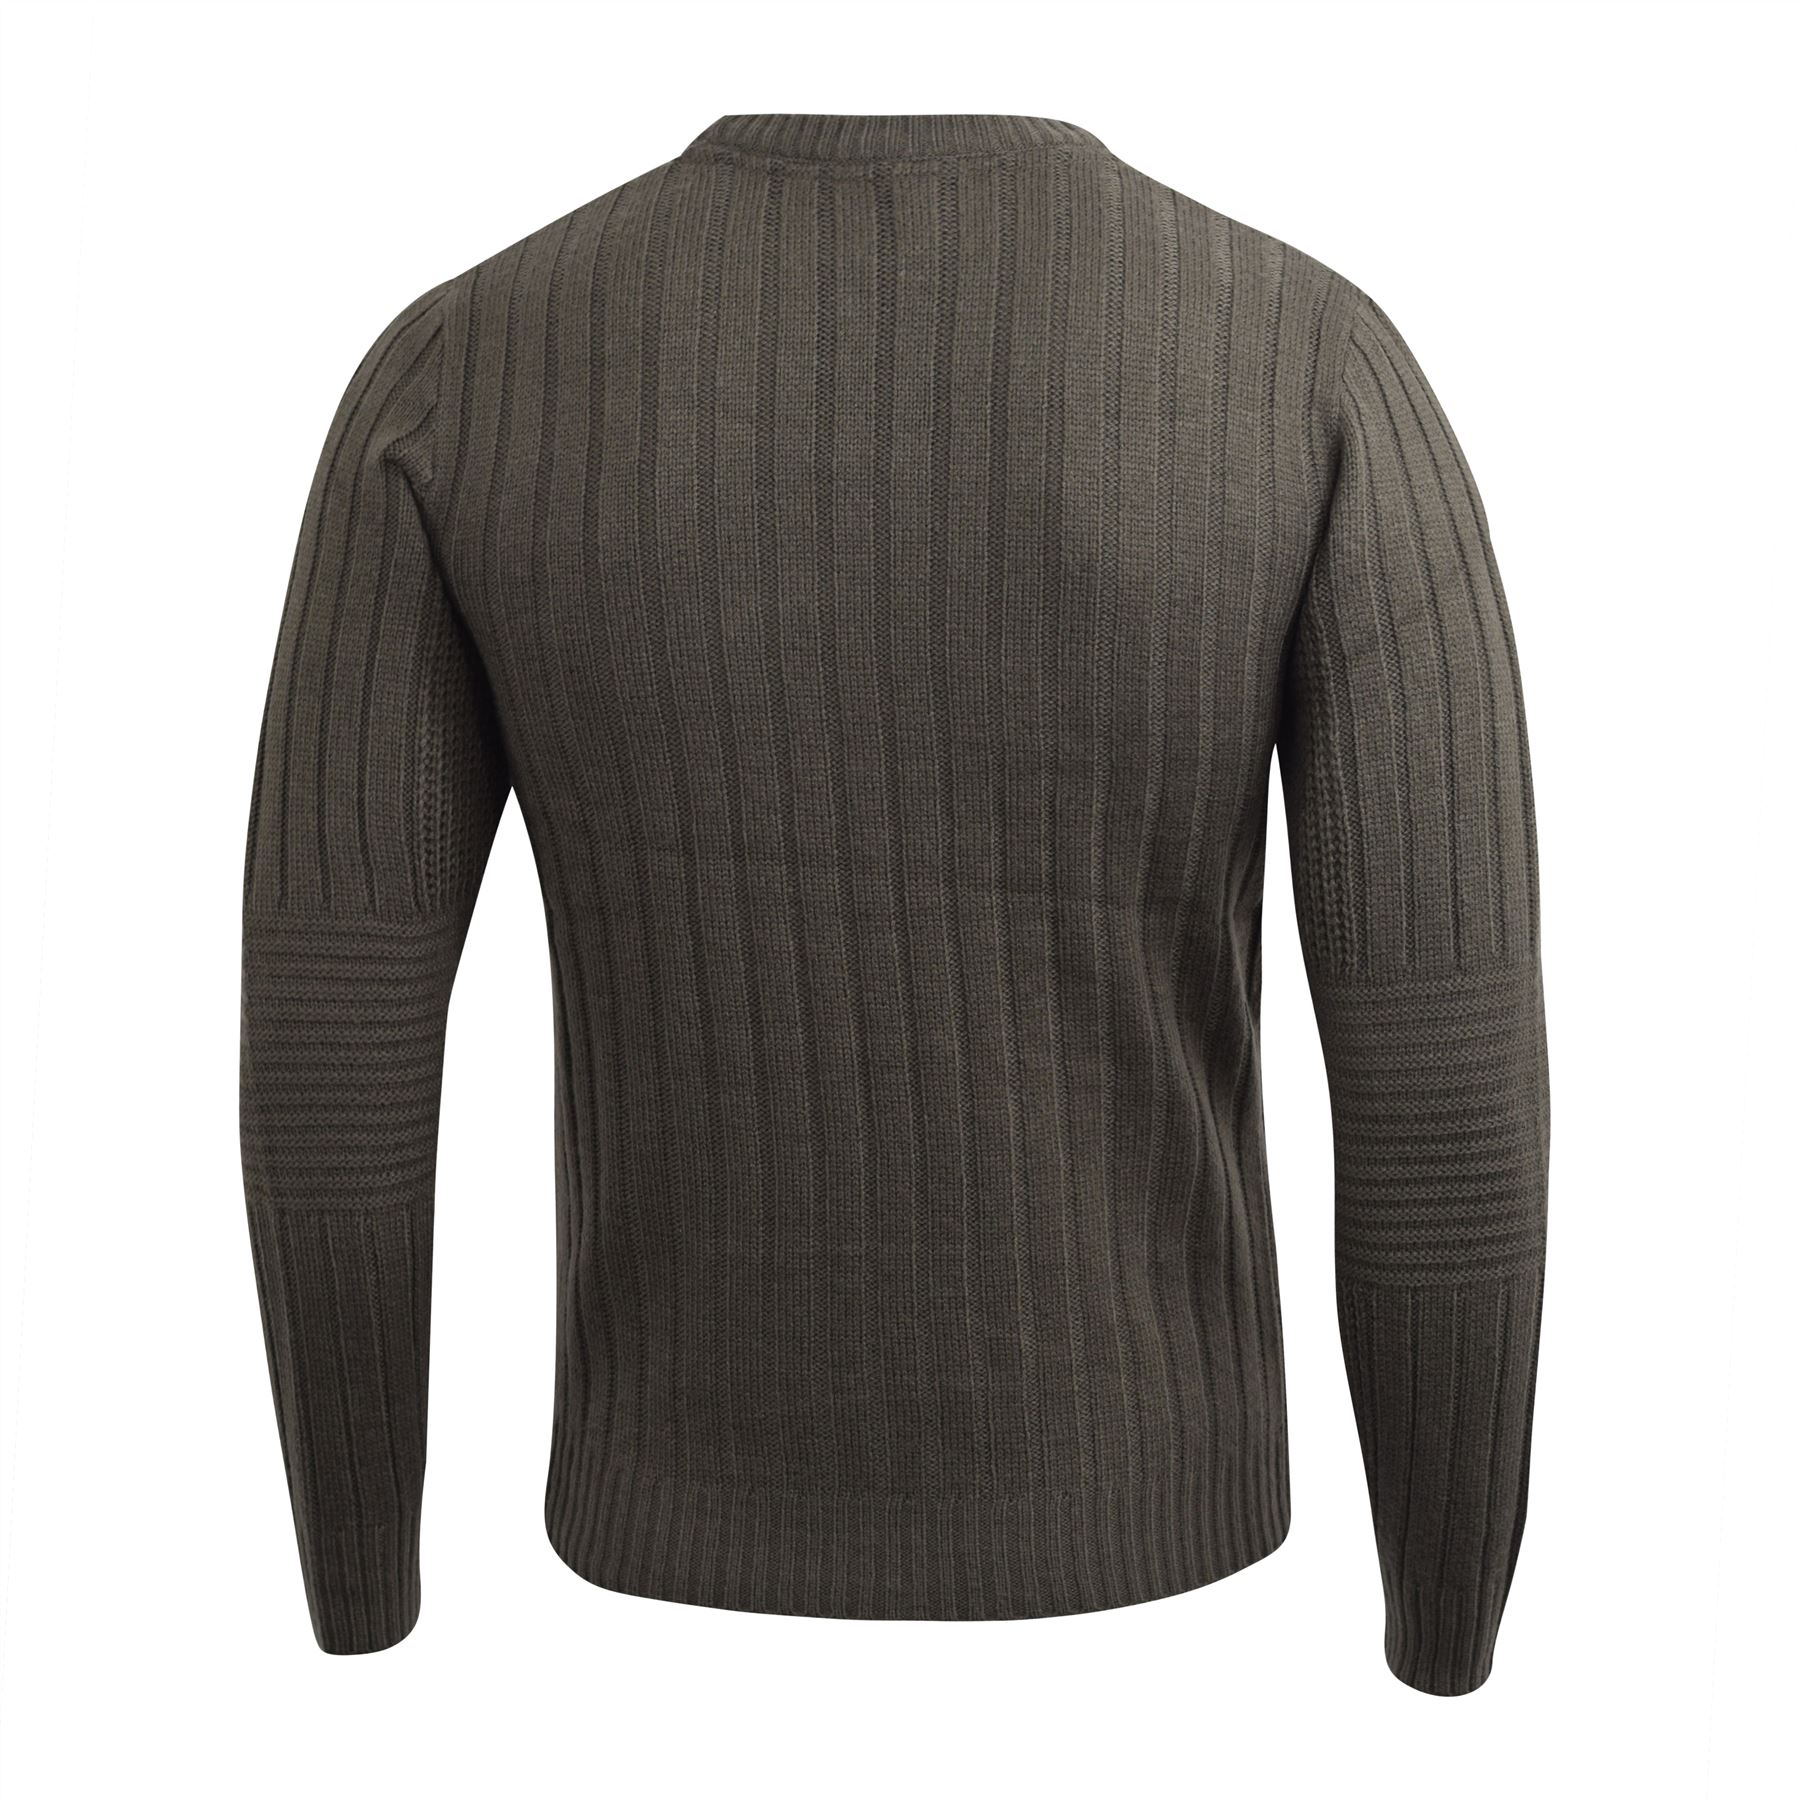 Mens-Knitwear-Crosshatch-Sweater-Textured-Knitted-Jumper thumbnail 7